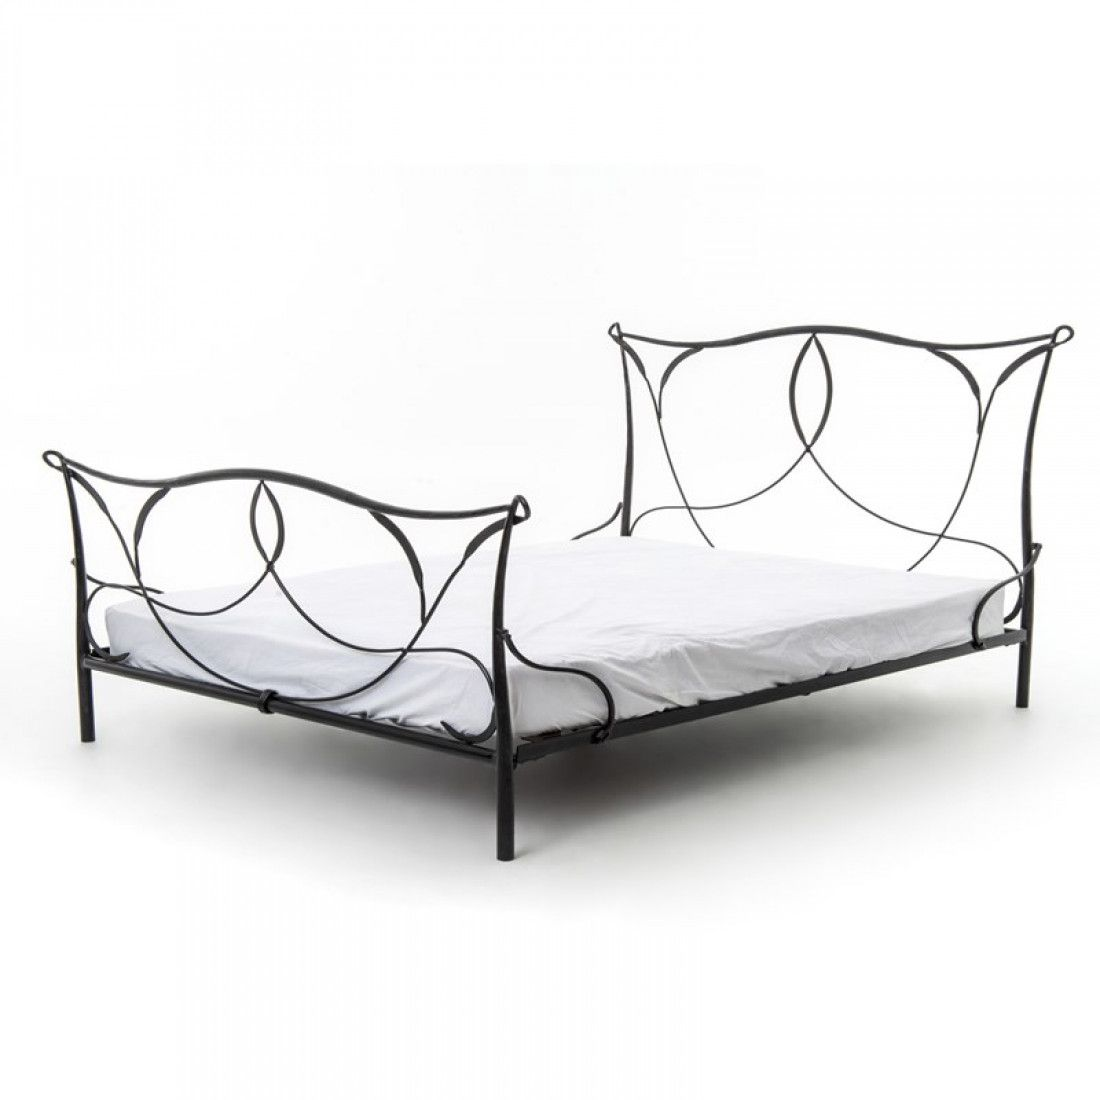 FOUR HANDS - Sienna Iron Bed - FH-ICAP-Q #rustic https: